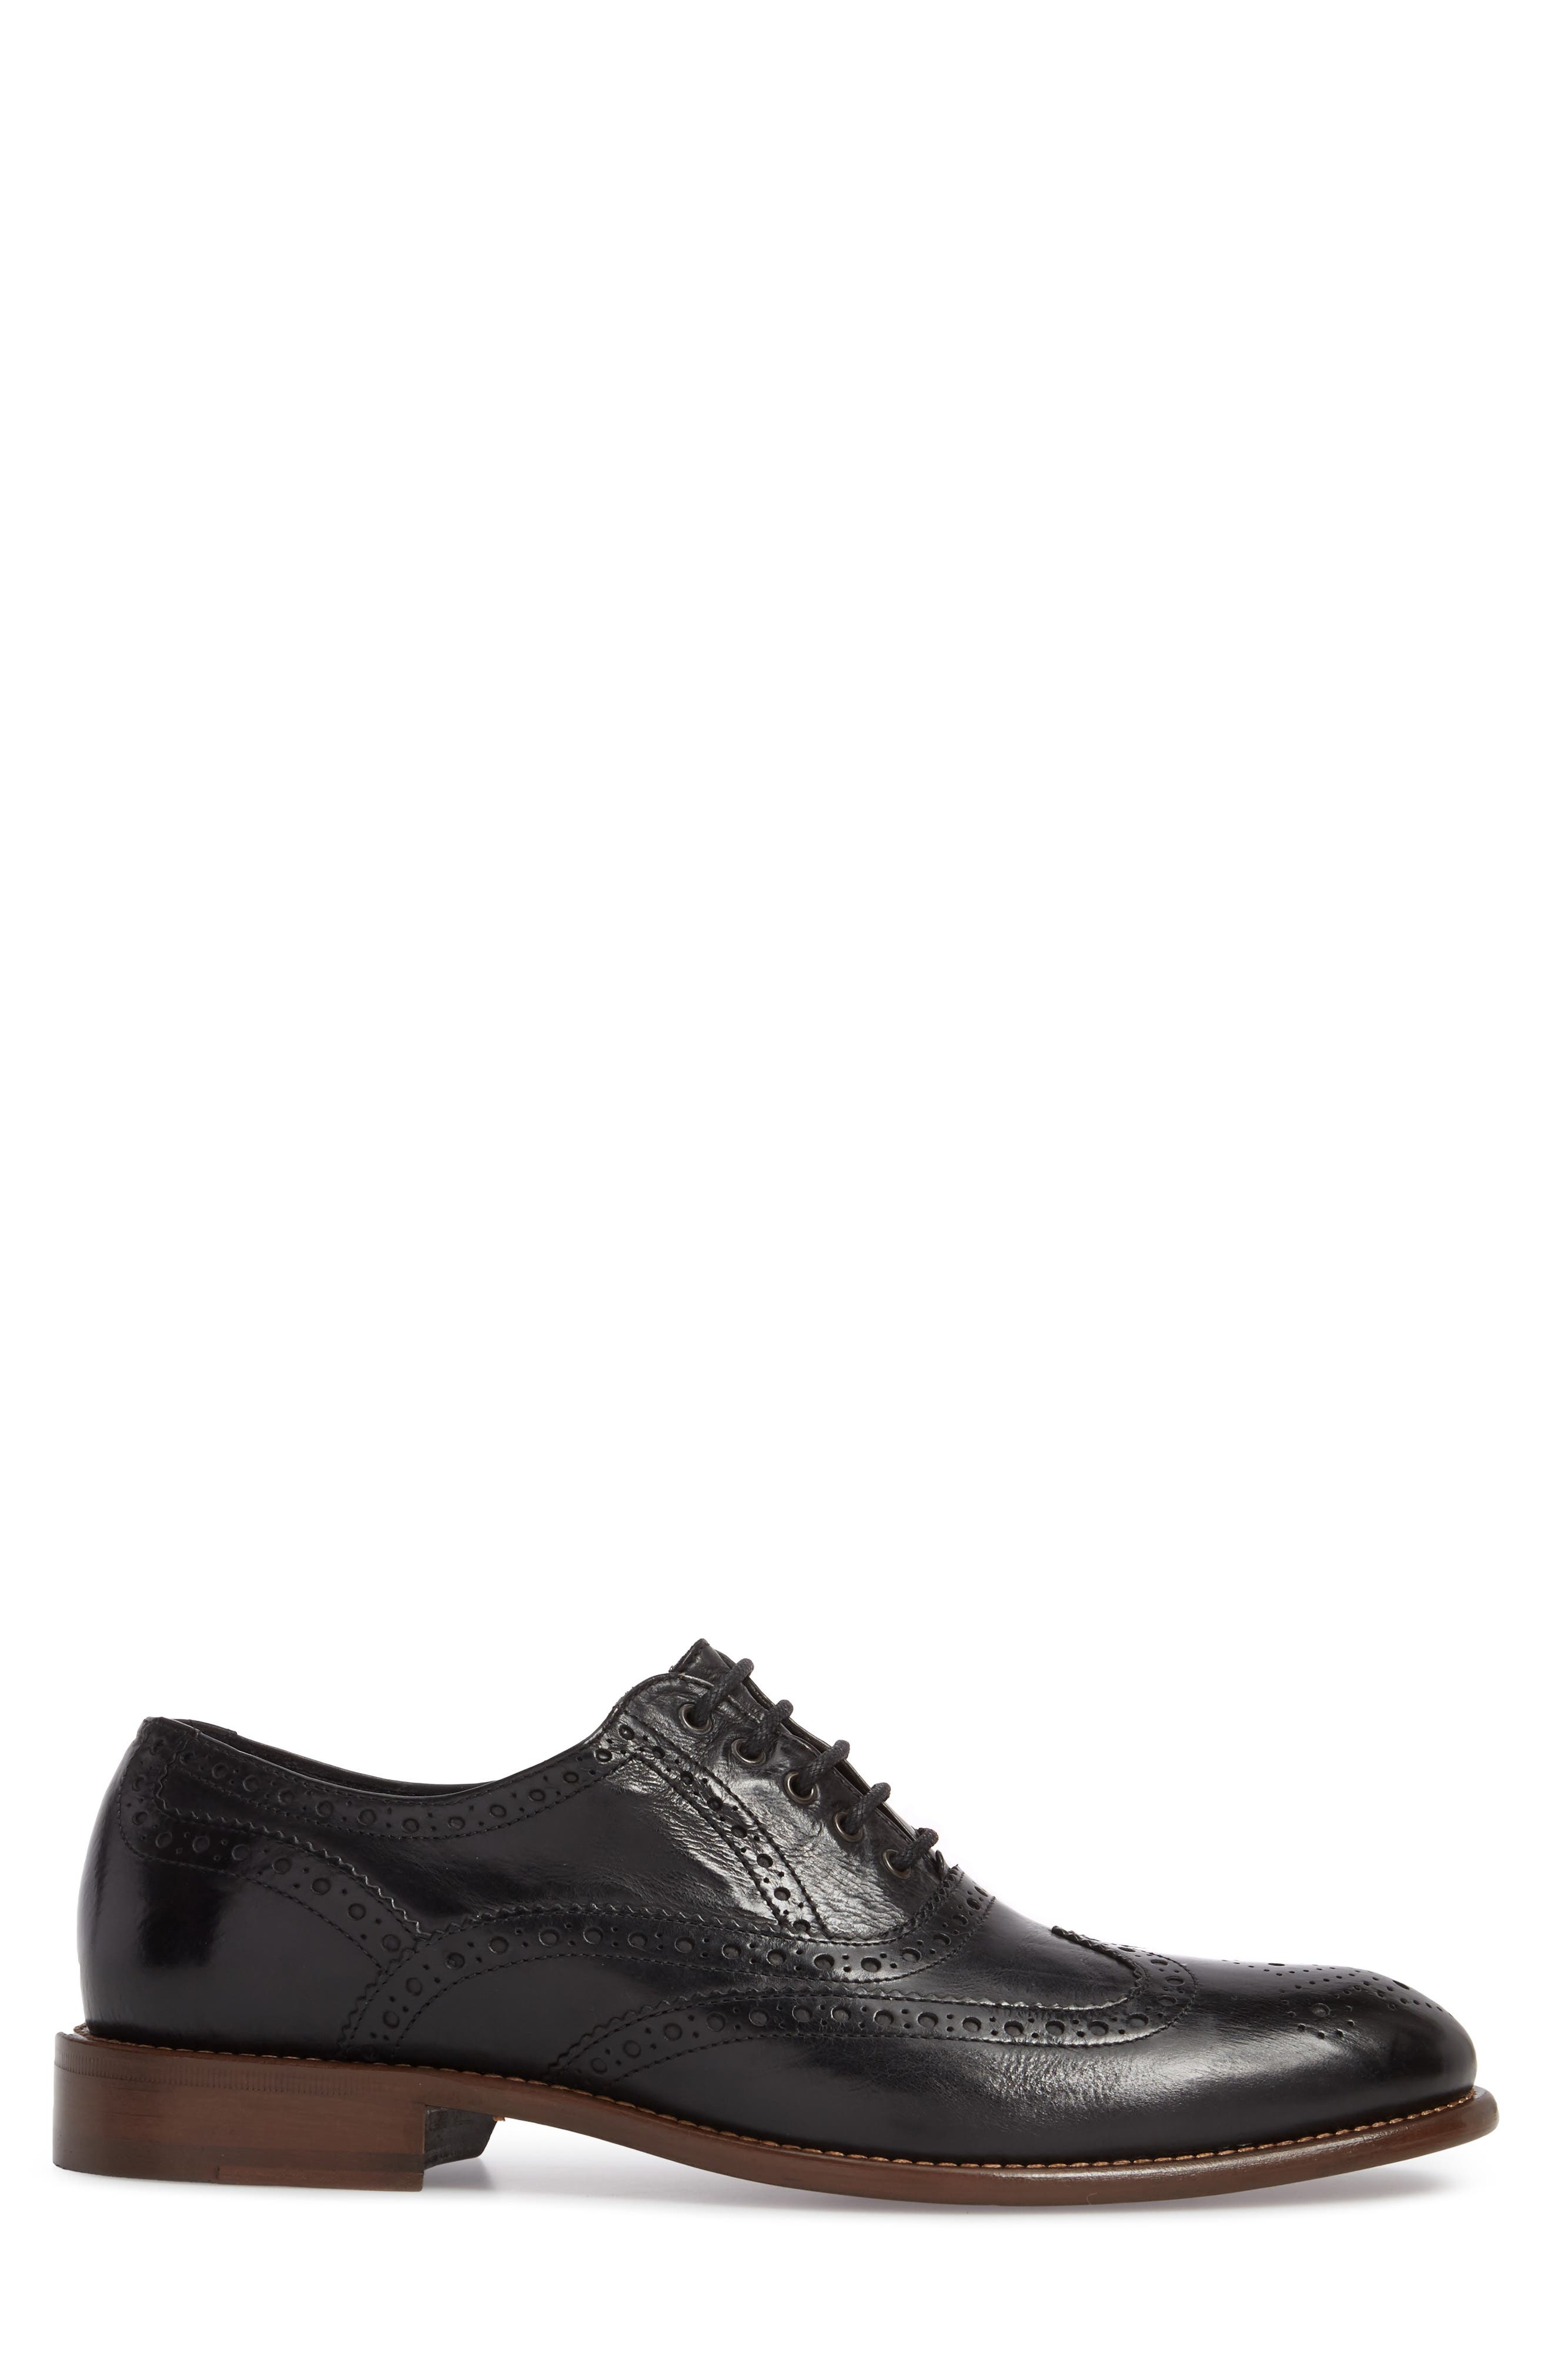 Bryson Wingtip Oxford,                             Alternate thumbnail 3, color,                             BLACK LEATHER